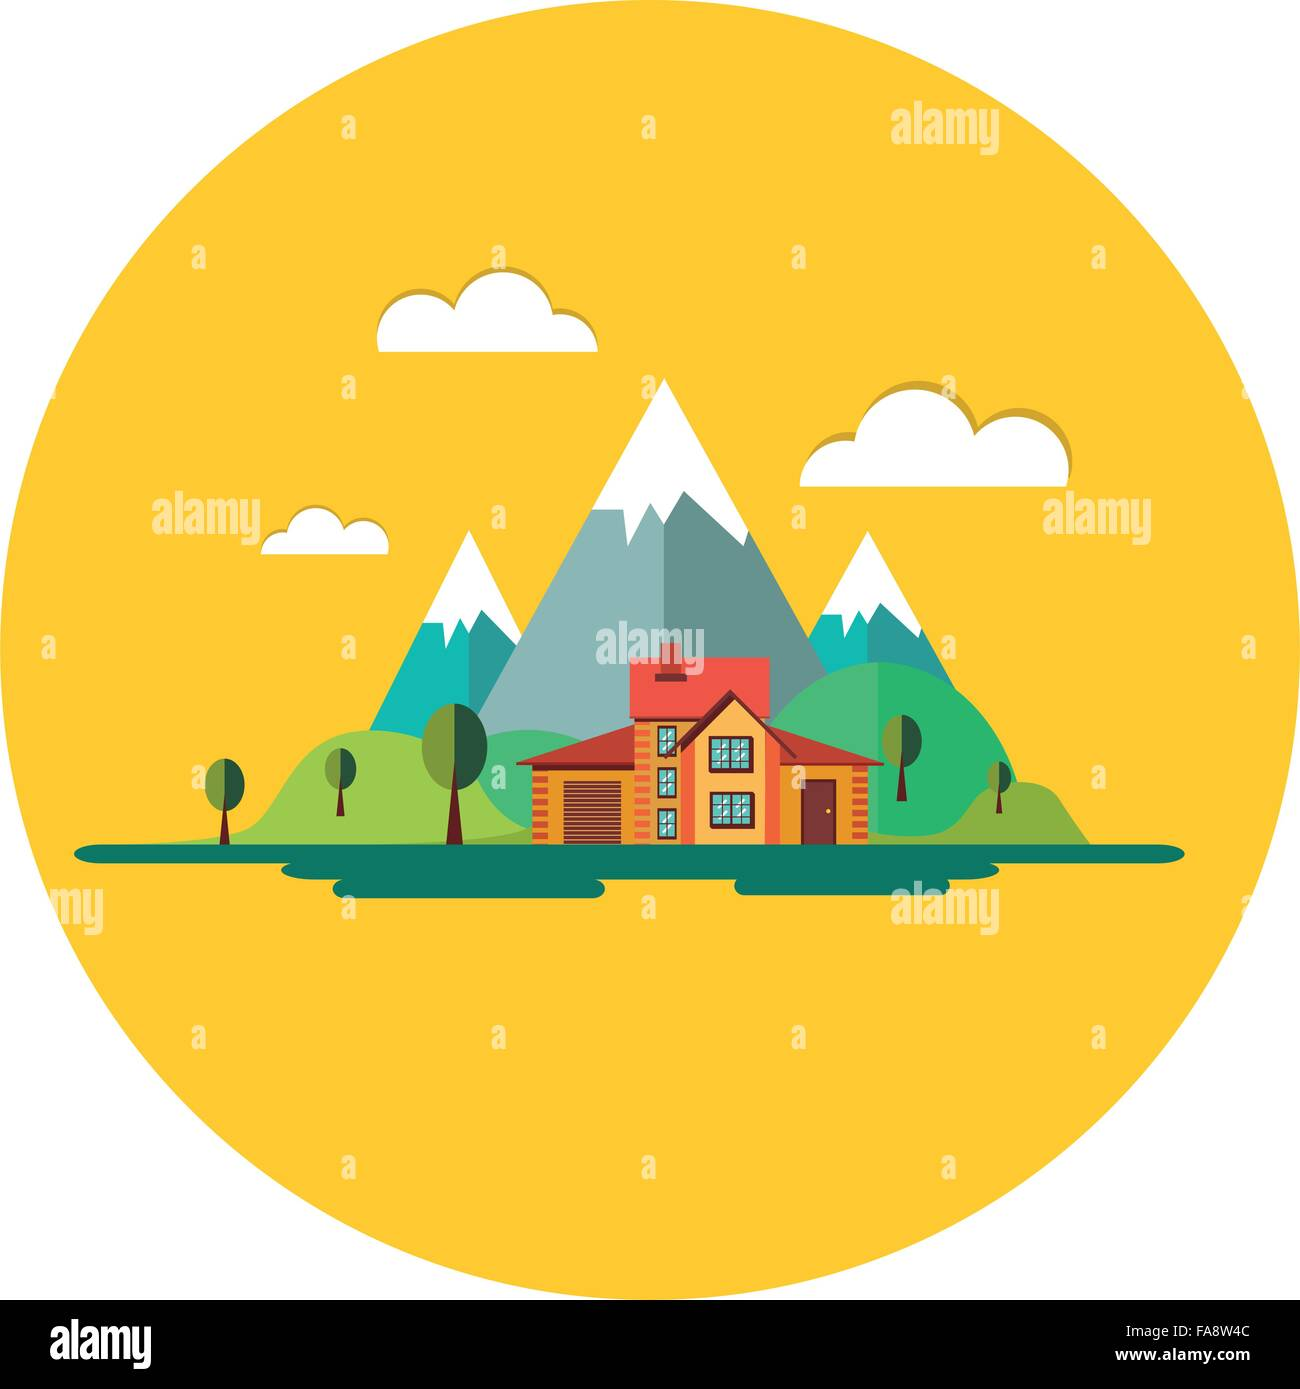 Color vector flat icon set and illustrations urban village landscapes - Stock Vector